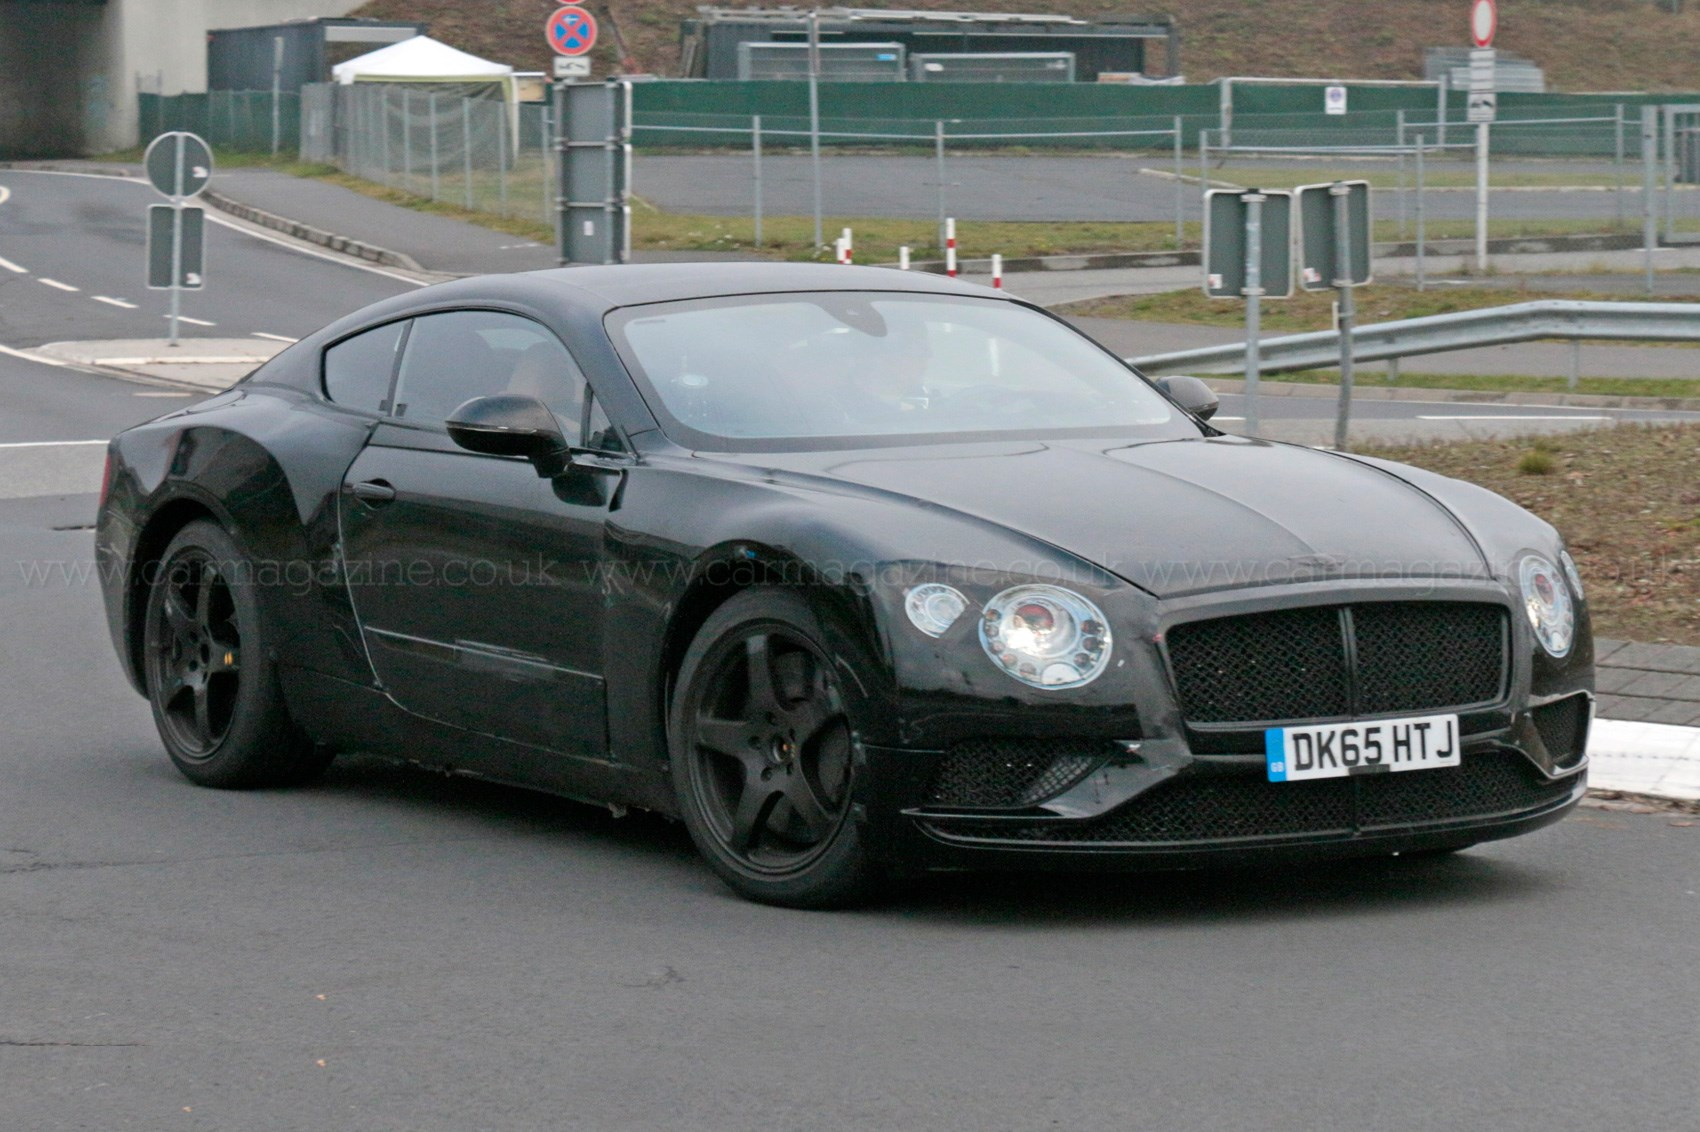 Spy photos specs of new 2018 bentley continental gt car for The bentley